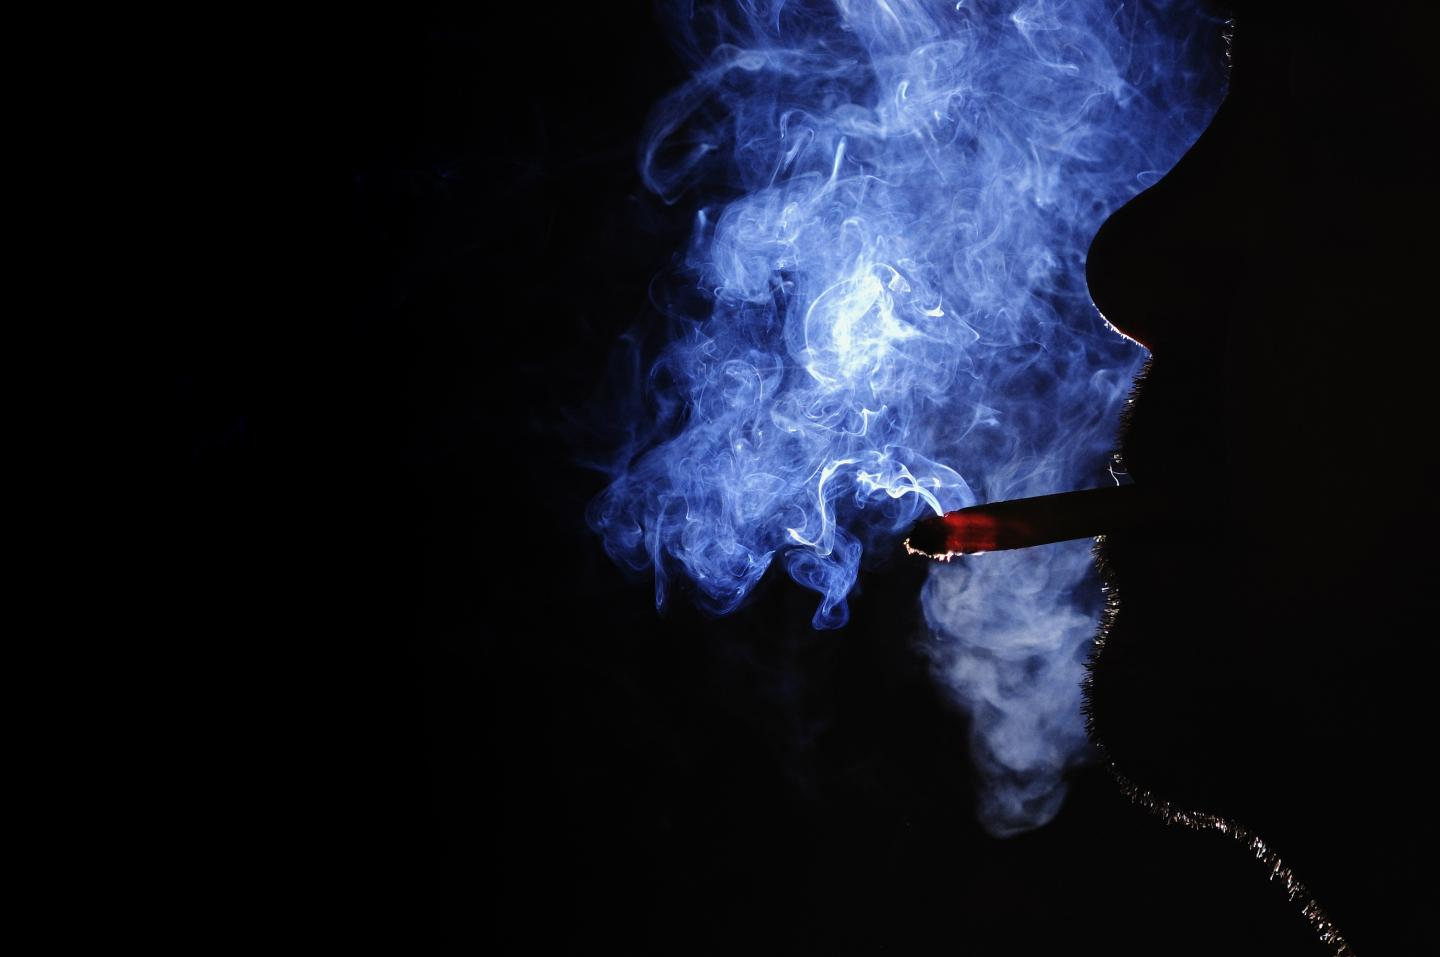 Smoking around Your Toddler Could Be Just as Bad as Smoking while Pregnant